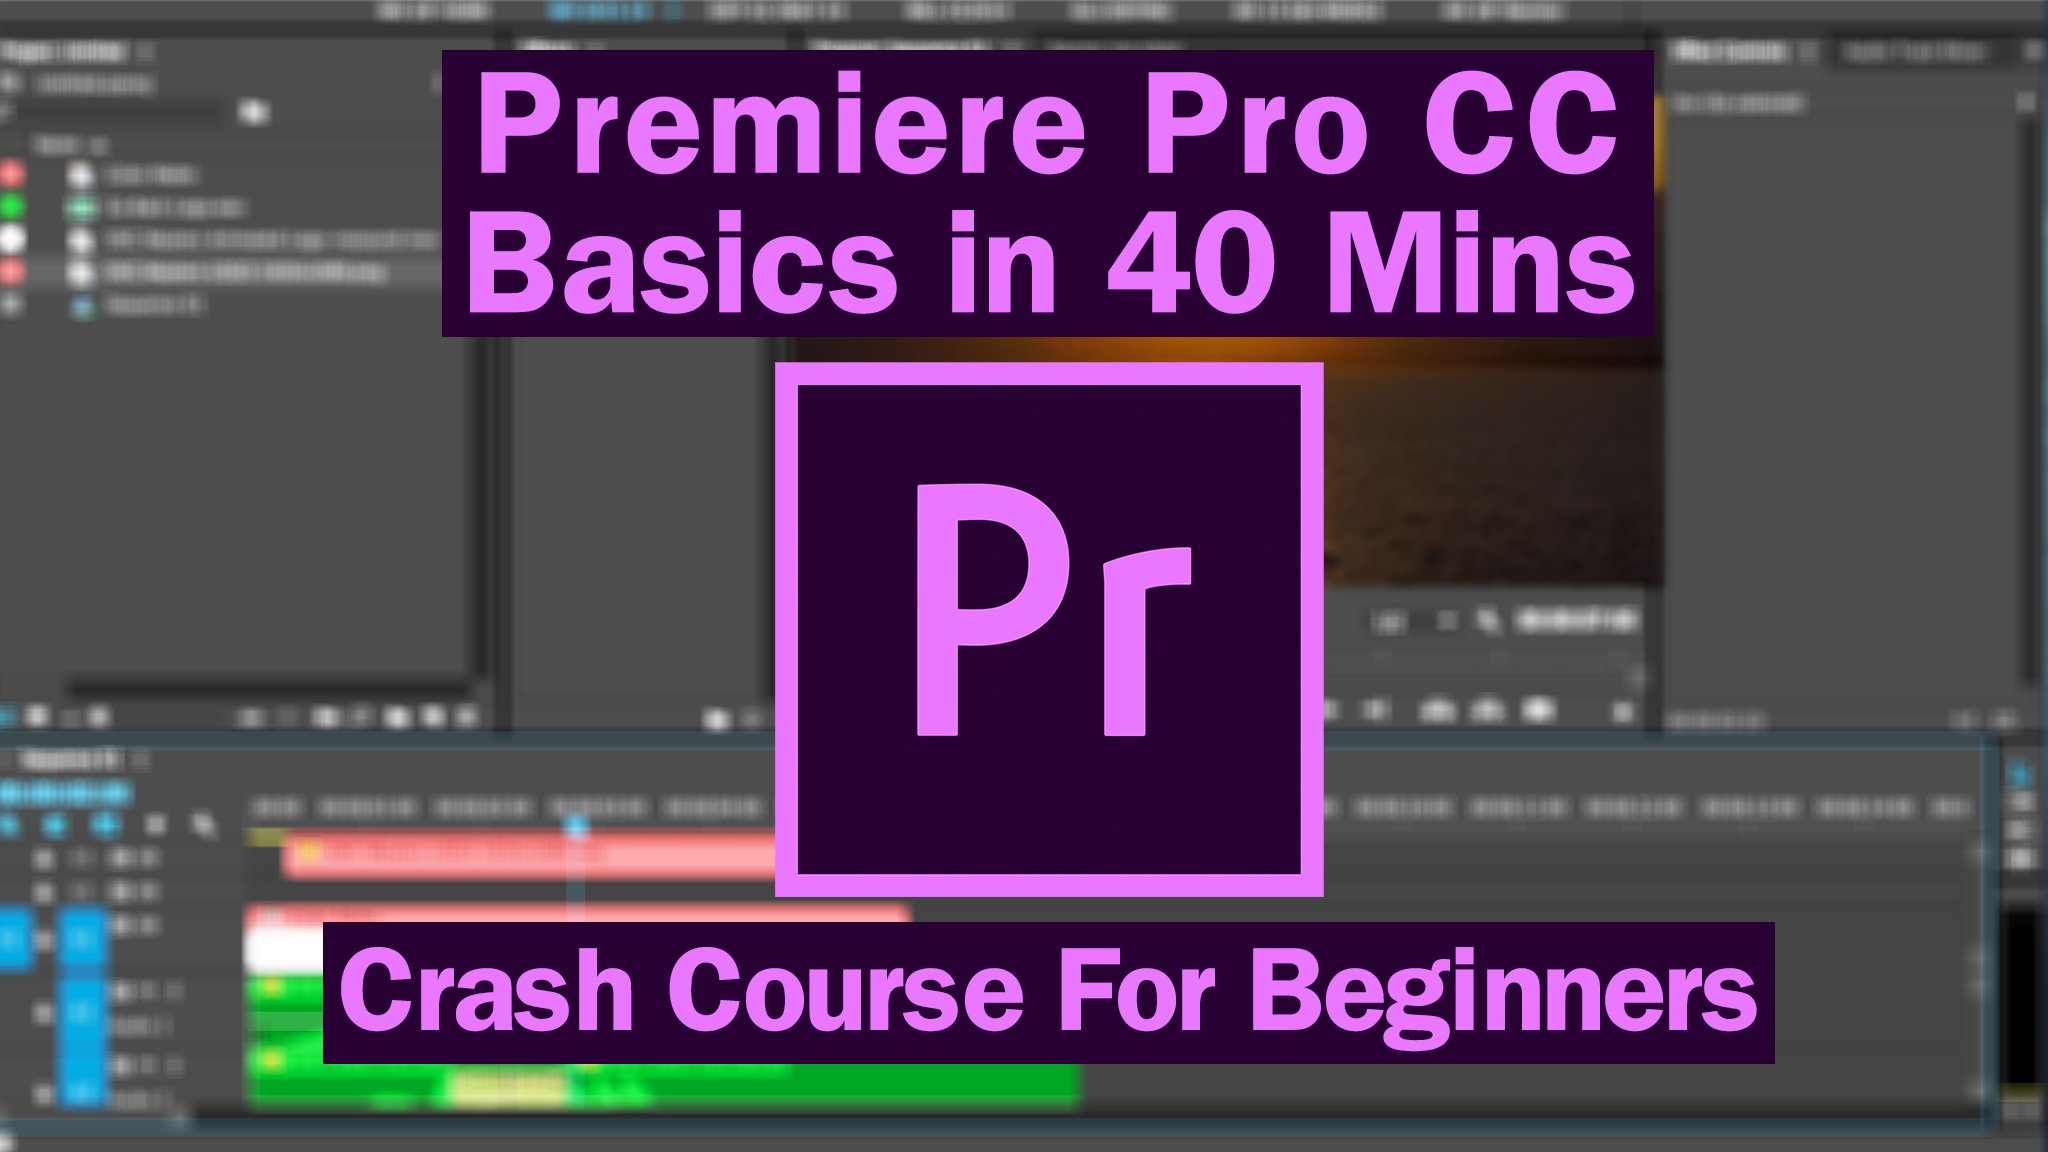 Video Editing course, skillshare course,